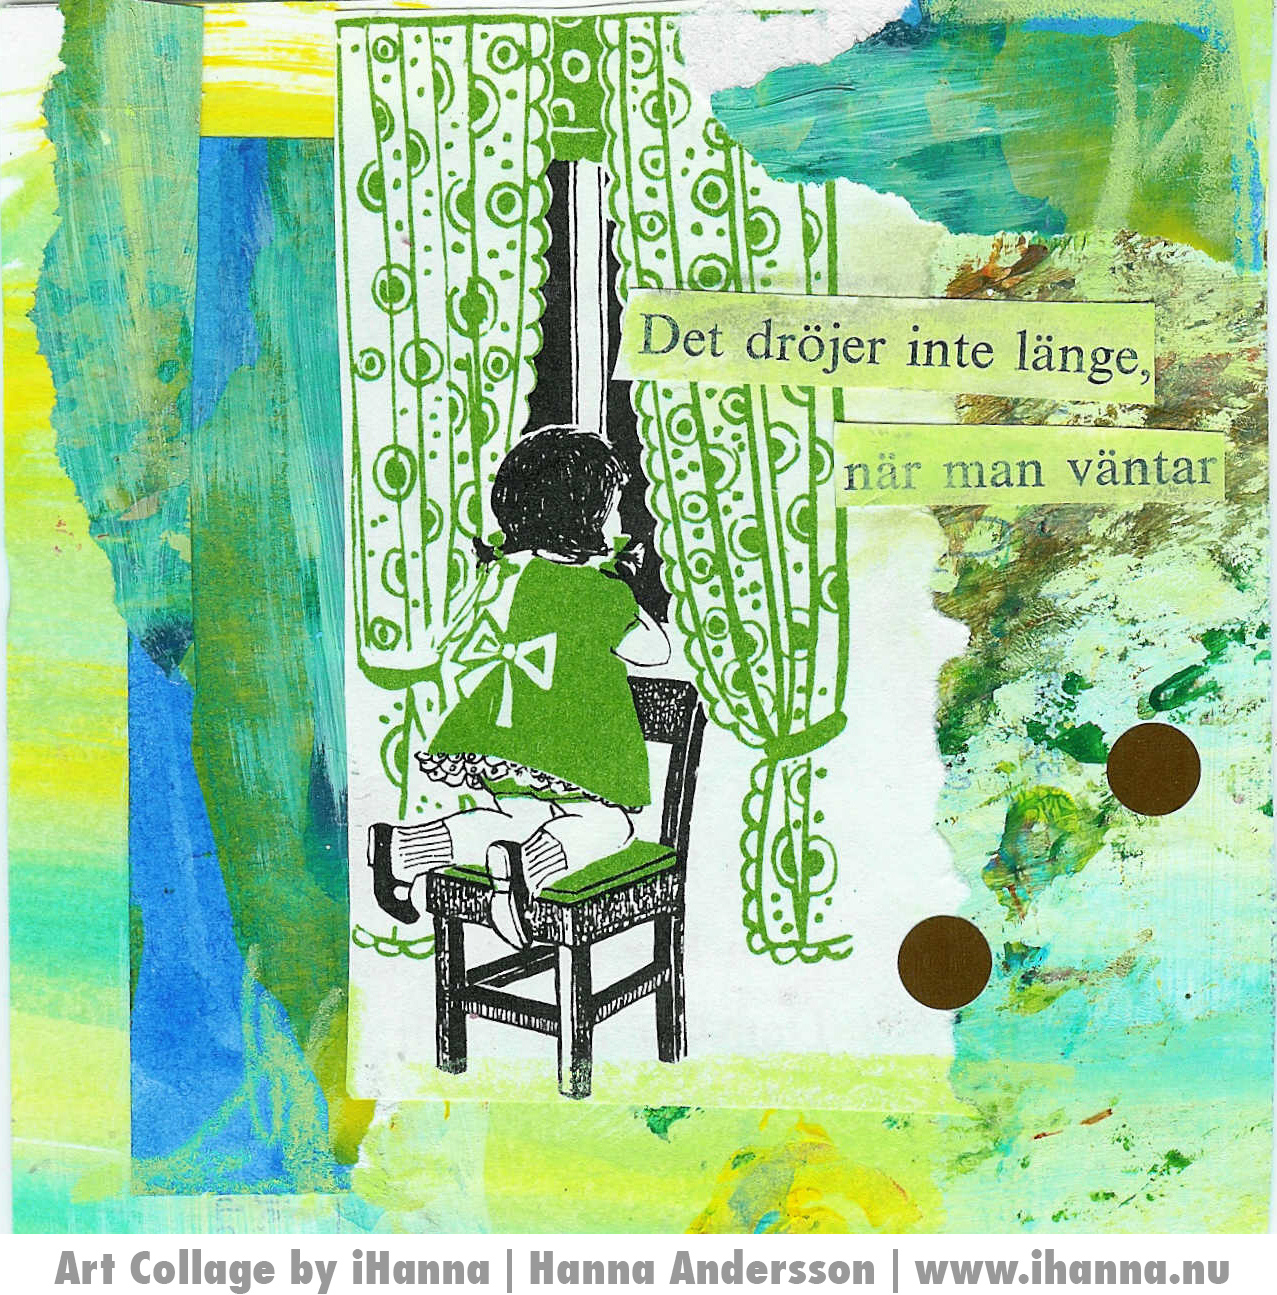 Waiting - an art card collage by Hanna Andersson, Studio iHanna